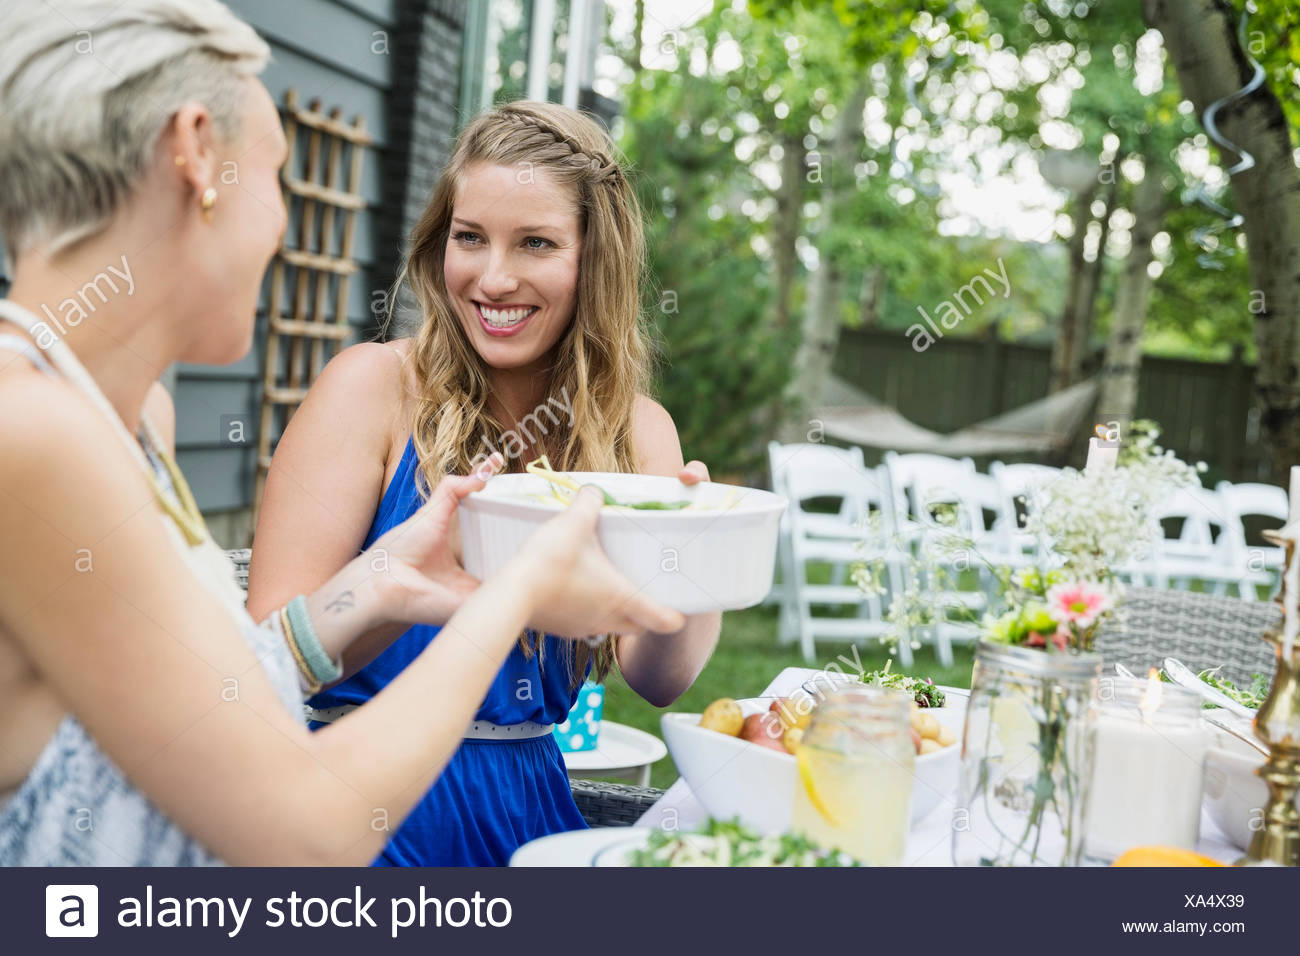 Smiling women passing food at garden party lunch - Stock Image